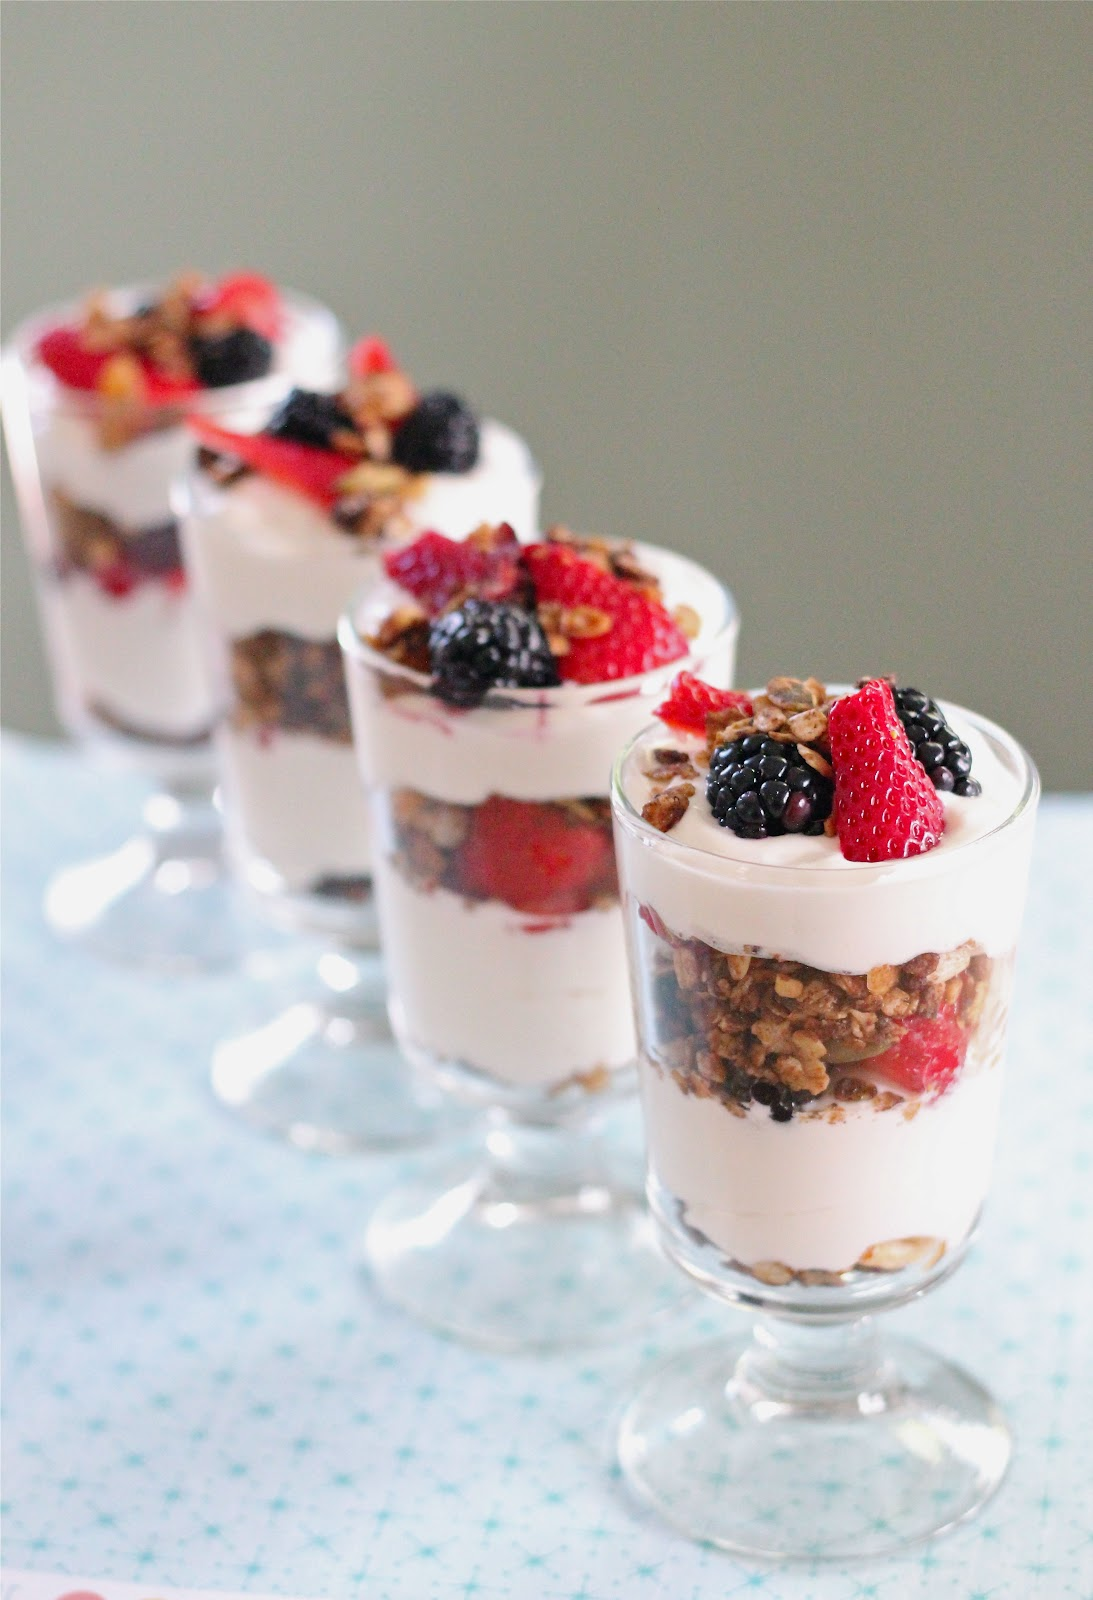 Mixed berry and granola parfait | Eat Good 4 Life